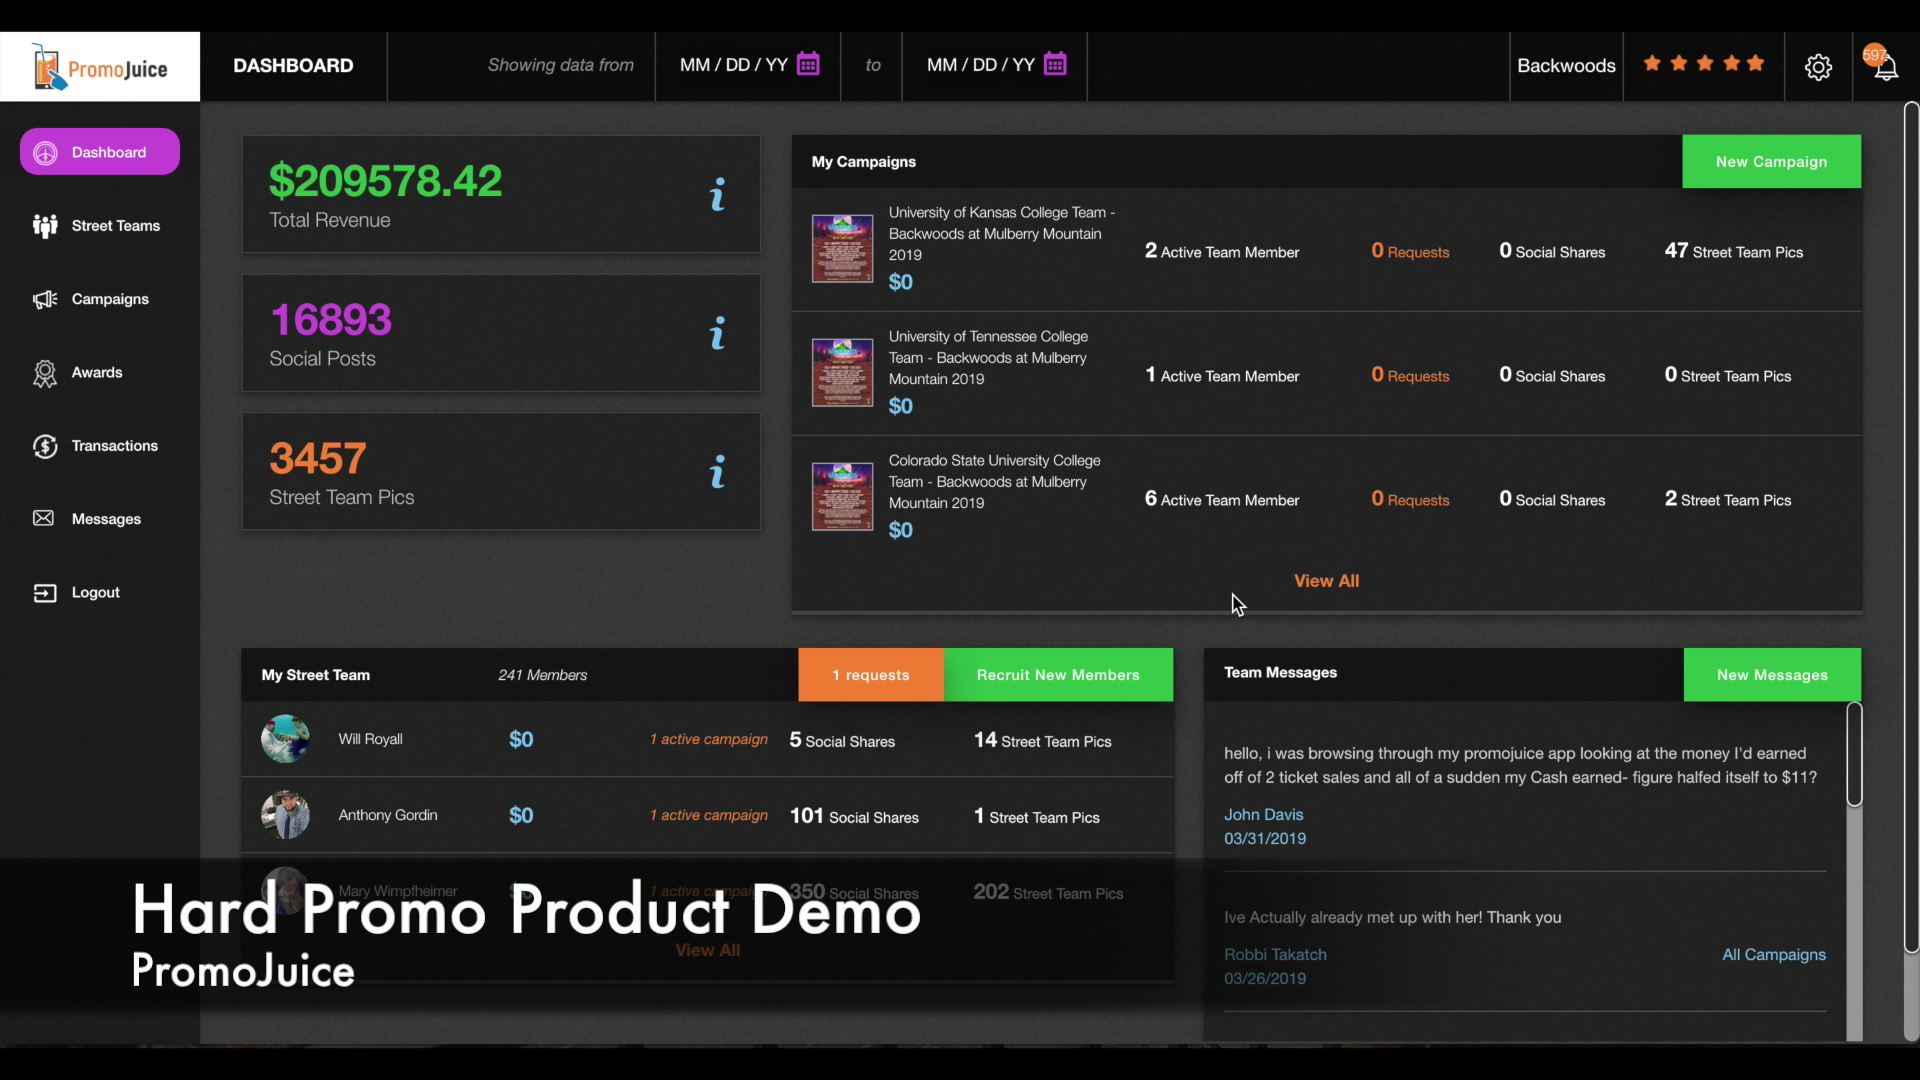 Hard Promo Product Demo